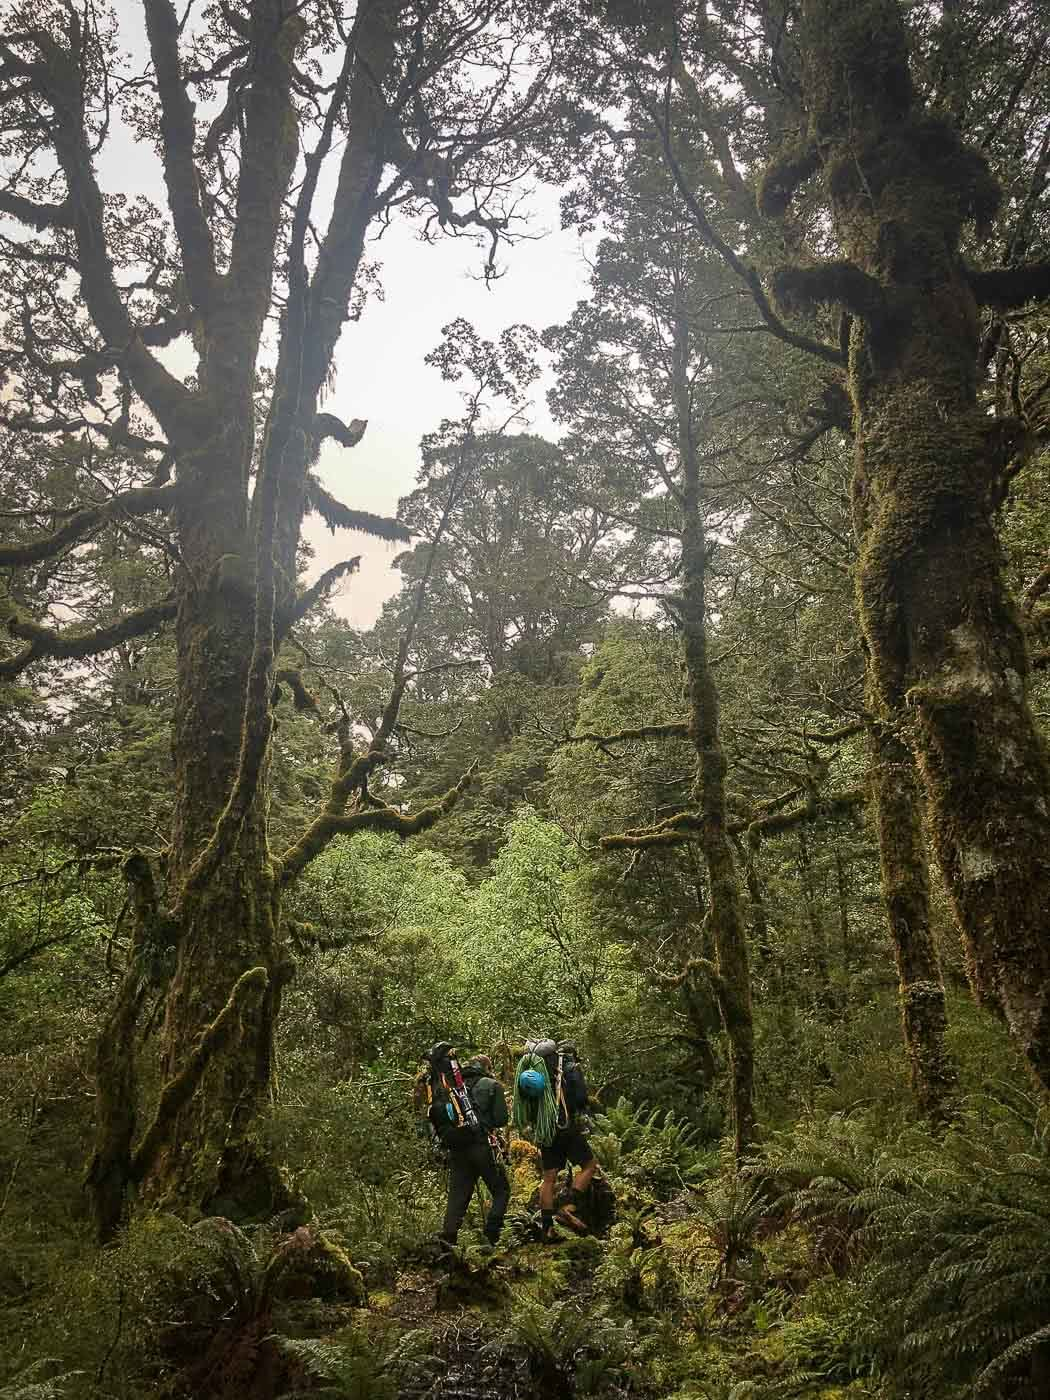 Arc'teryx Beta AR and Alpha SV Waterproof Jackets // Gear Review by Mike Ashelford Beta Jackets (and beta blokes haaa) Arc'teryx Jacket Review-7, muggy rainforest, nz